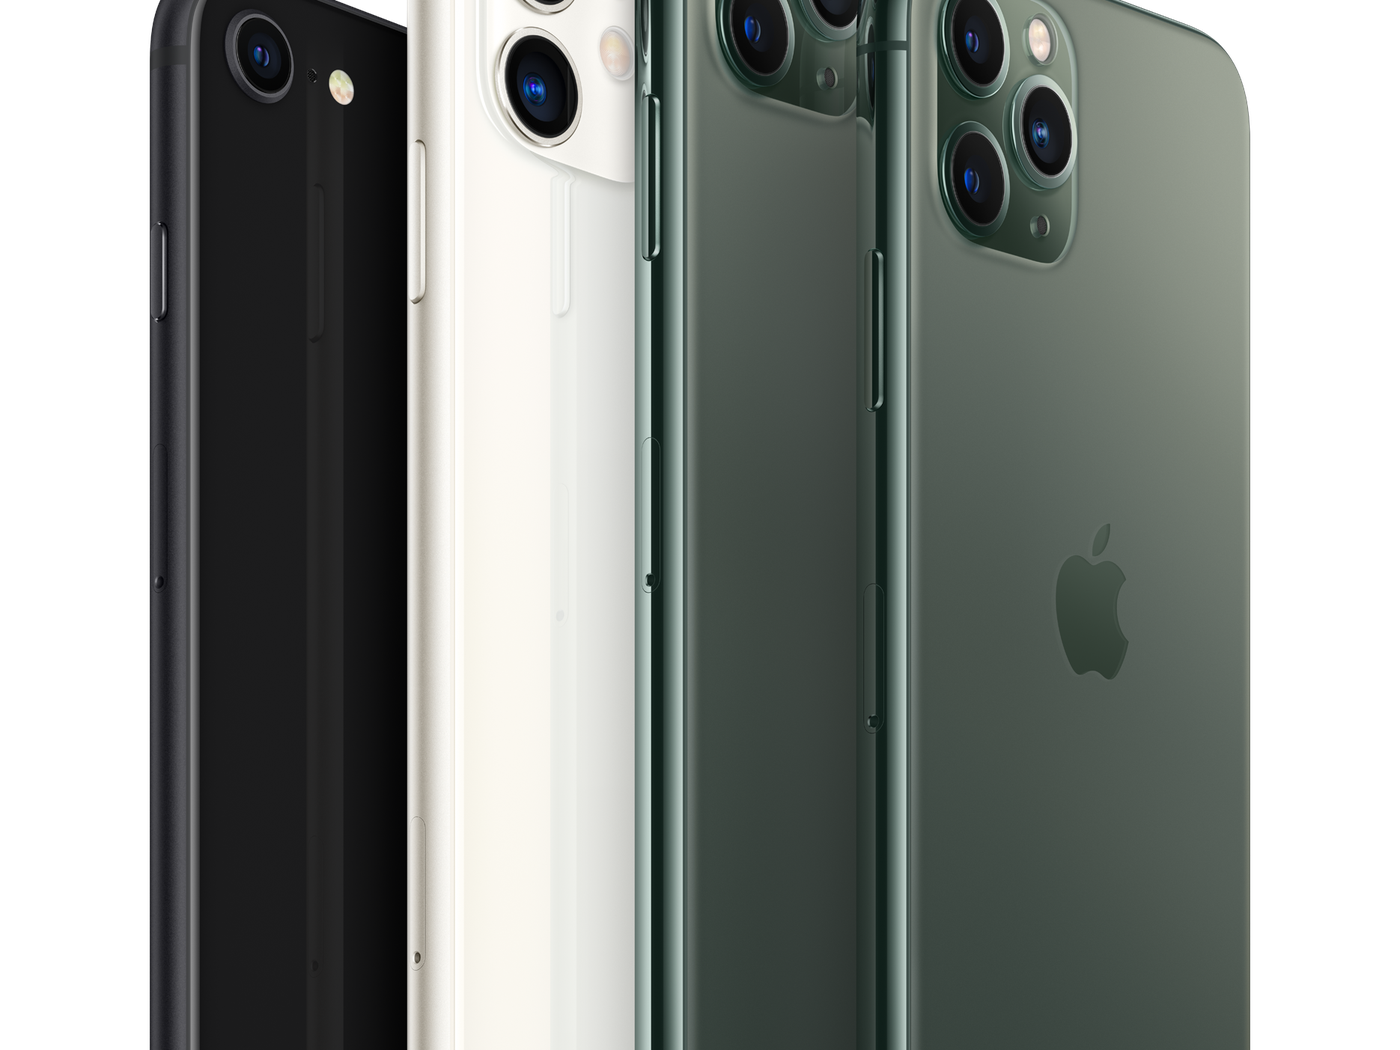 Iphone Se Vs Iphone 11 Vs Iphone 11 Pro How Apple S Newest Iphone Compares To Its Flagships The Verge